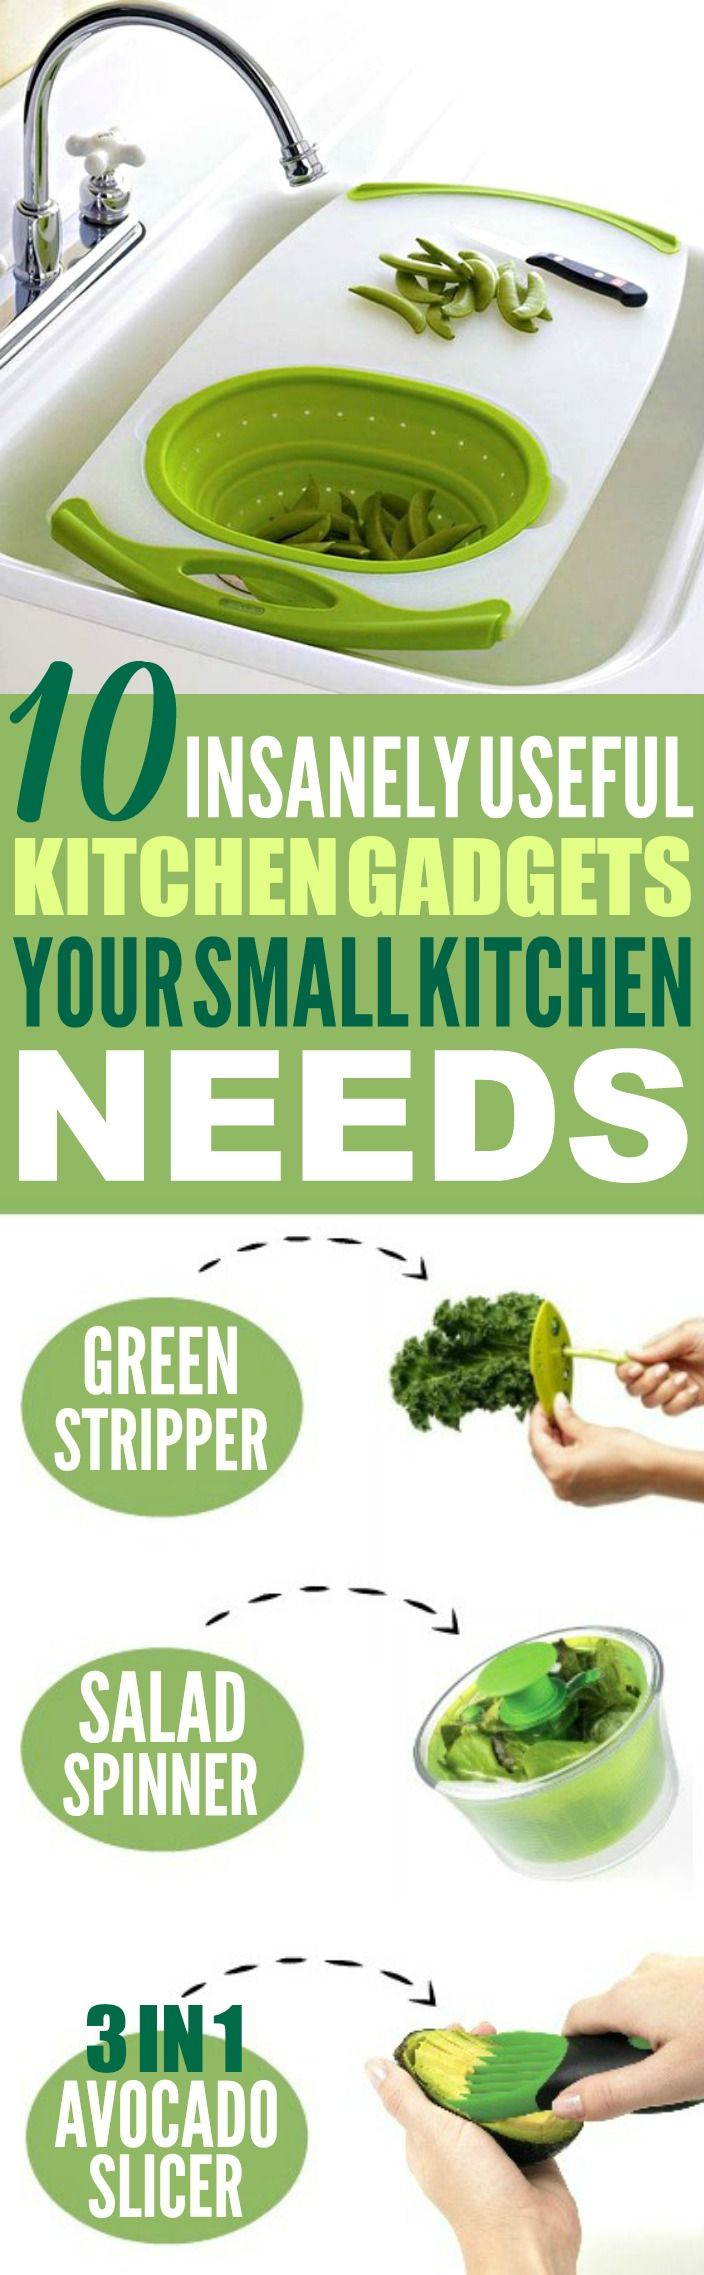 These 10 insanely useful kitchen gadgets and gizmos are THE BEST! I'm so glad I found these AMAZING tips! Now I have some great kitchen gadgets to make my cooking easier! Definitely pinning!